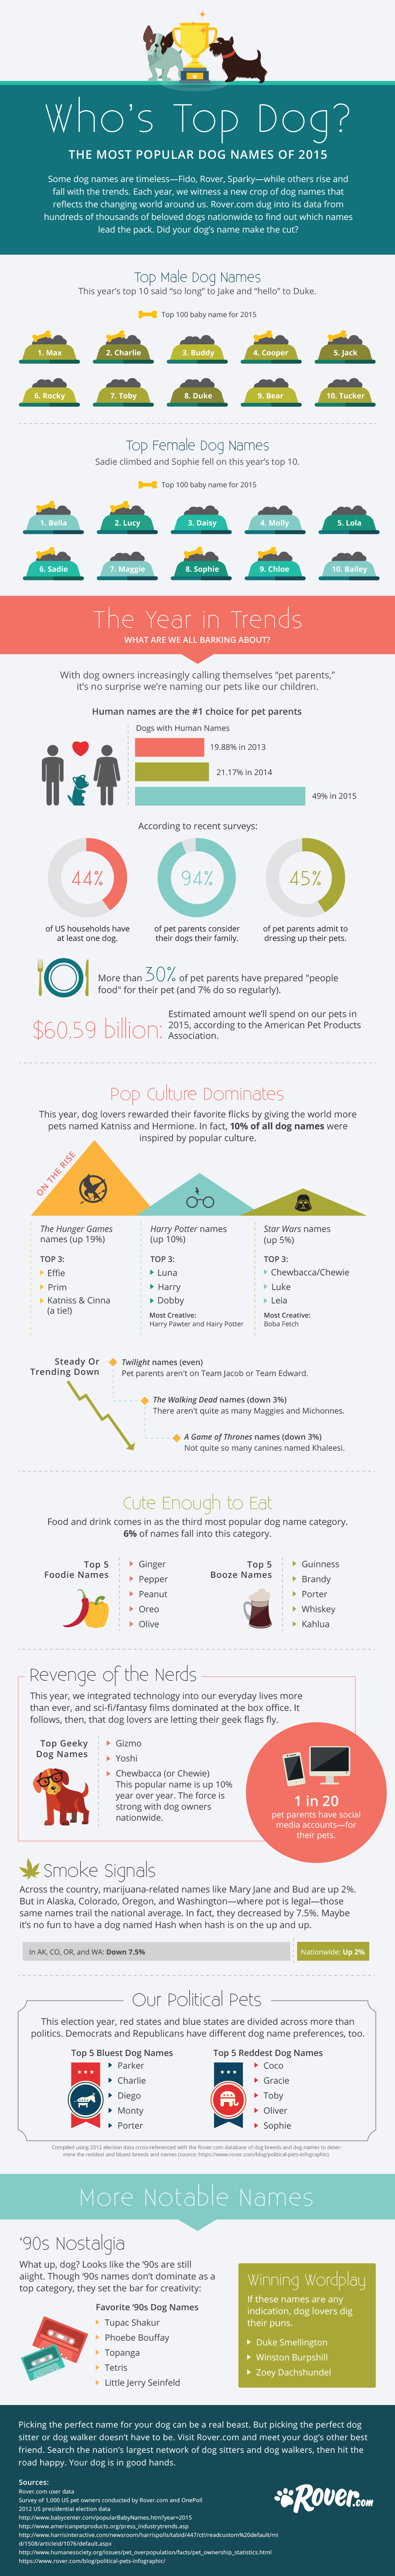 Dog_Name_Infographic_2015